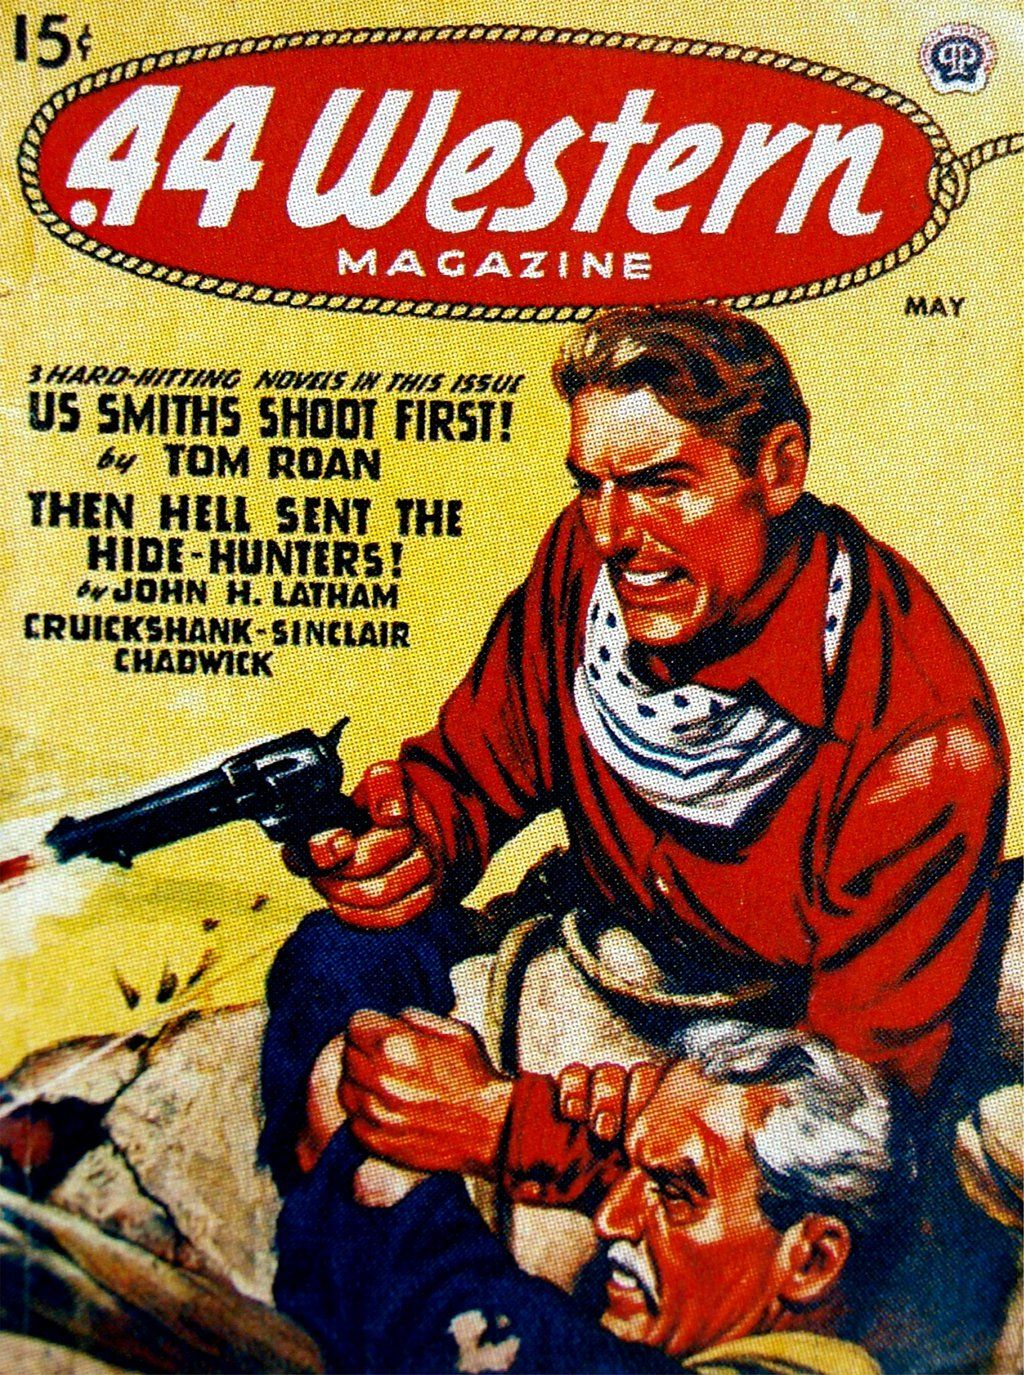 44 Western Magazine By Peterpulpviantart On